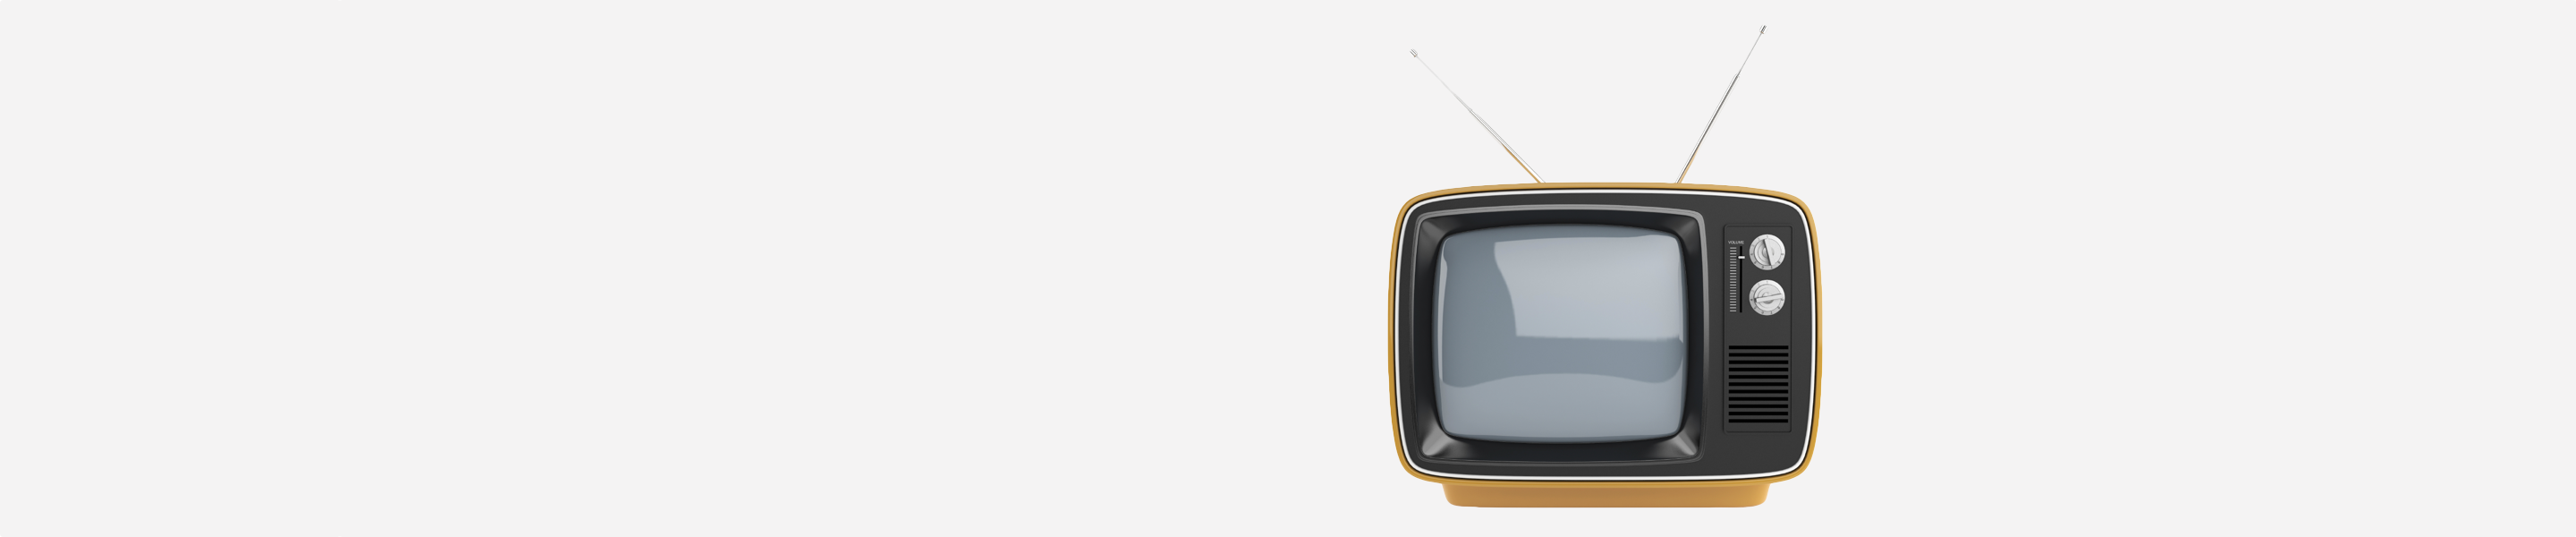 slide-old-tv2